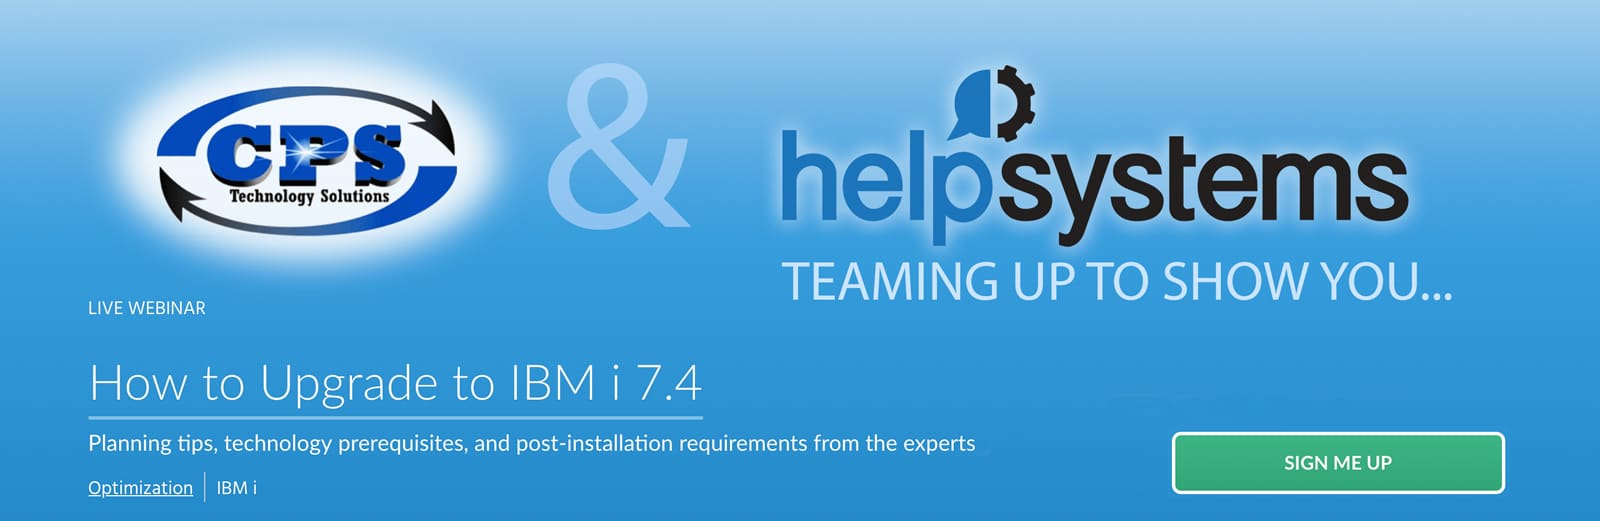 Webinar Replay – How to Upgrade to IBM i 7 4 - CPS